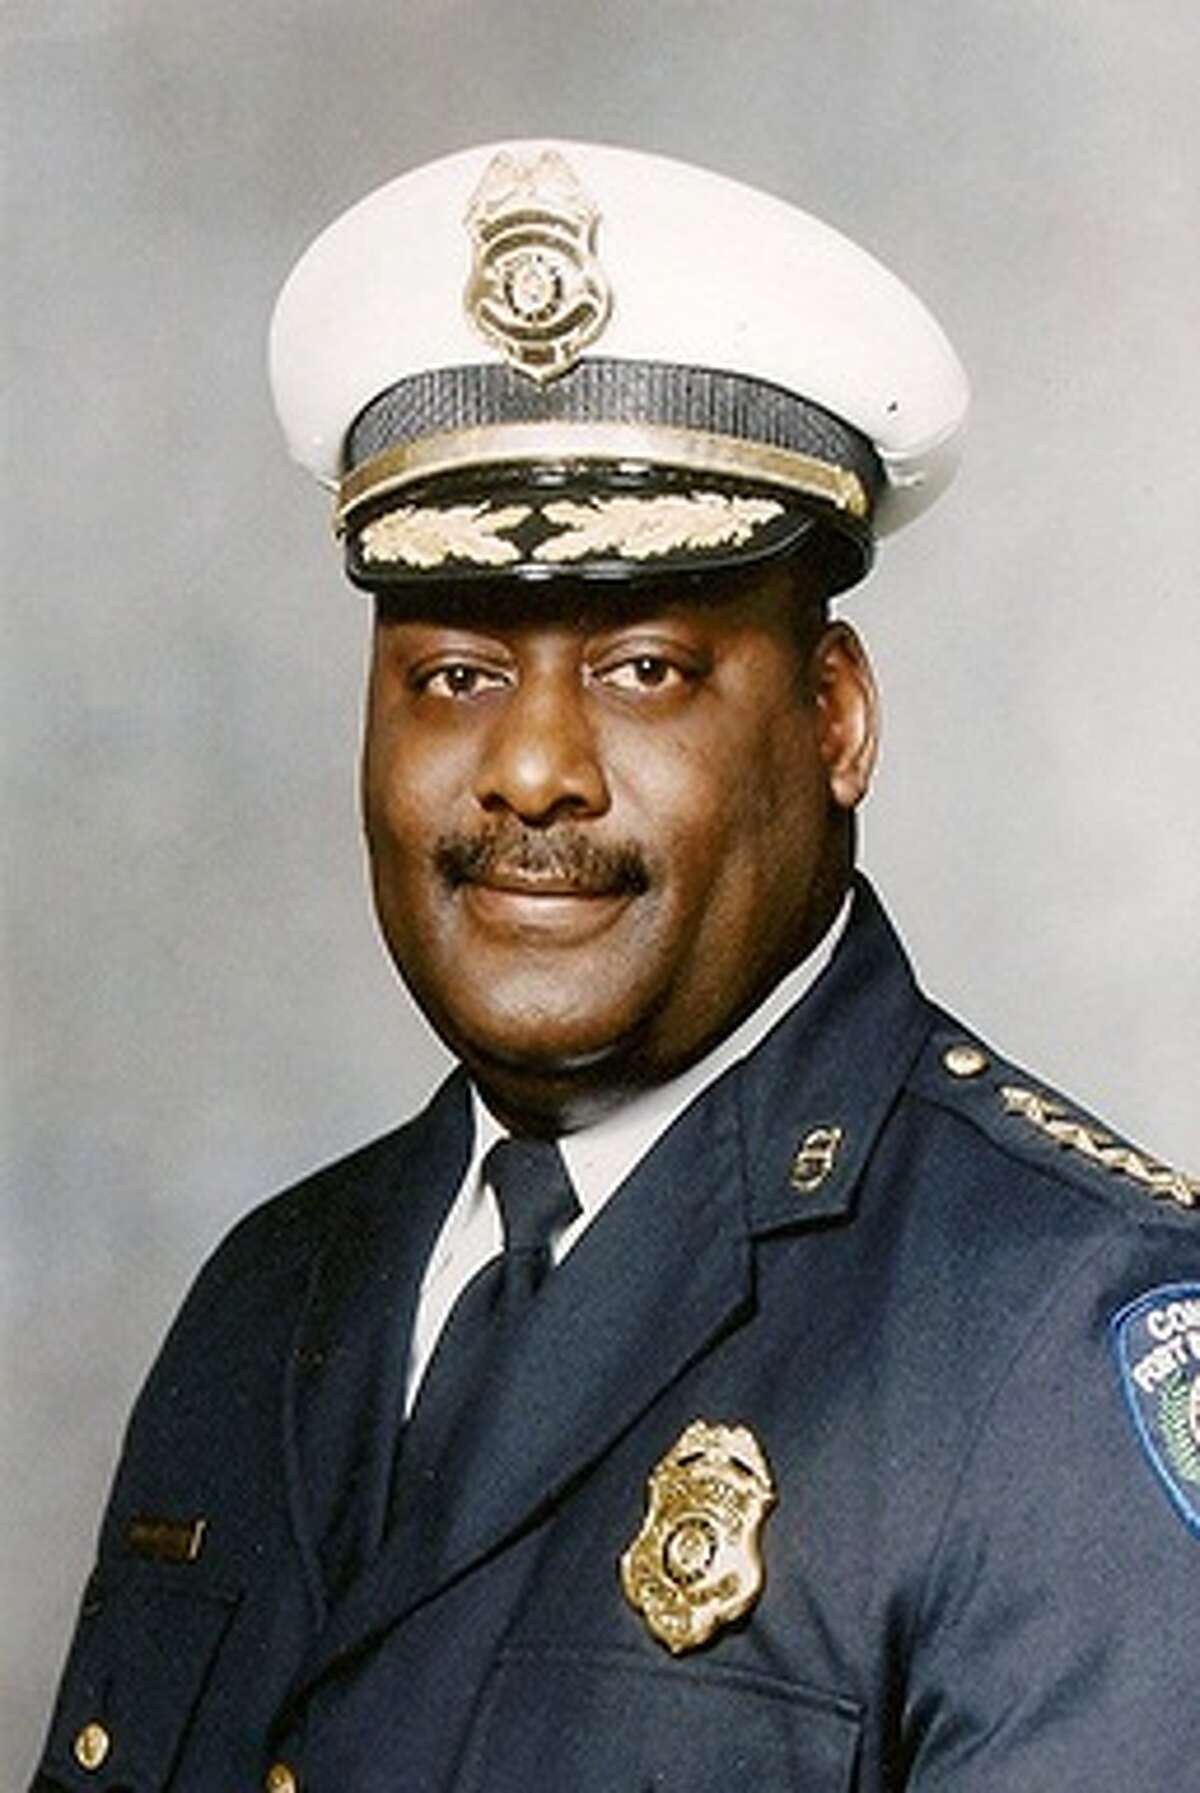 Fort Bend County Constable Ruben Davis died early Tuesday at age 61 after a long illness.